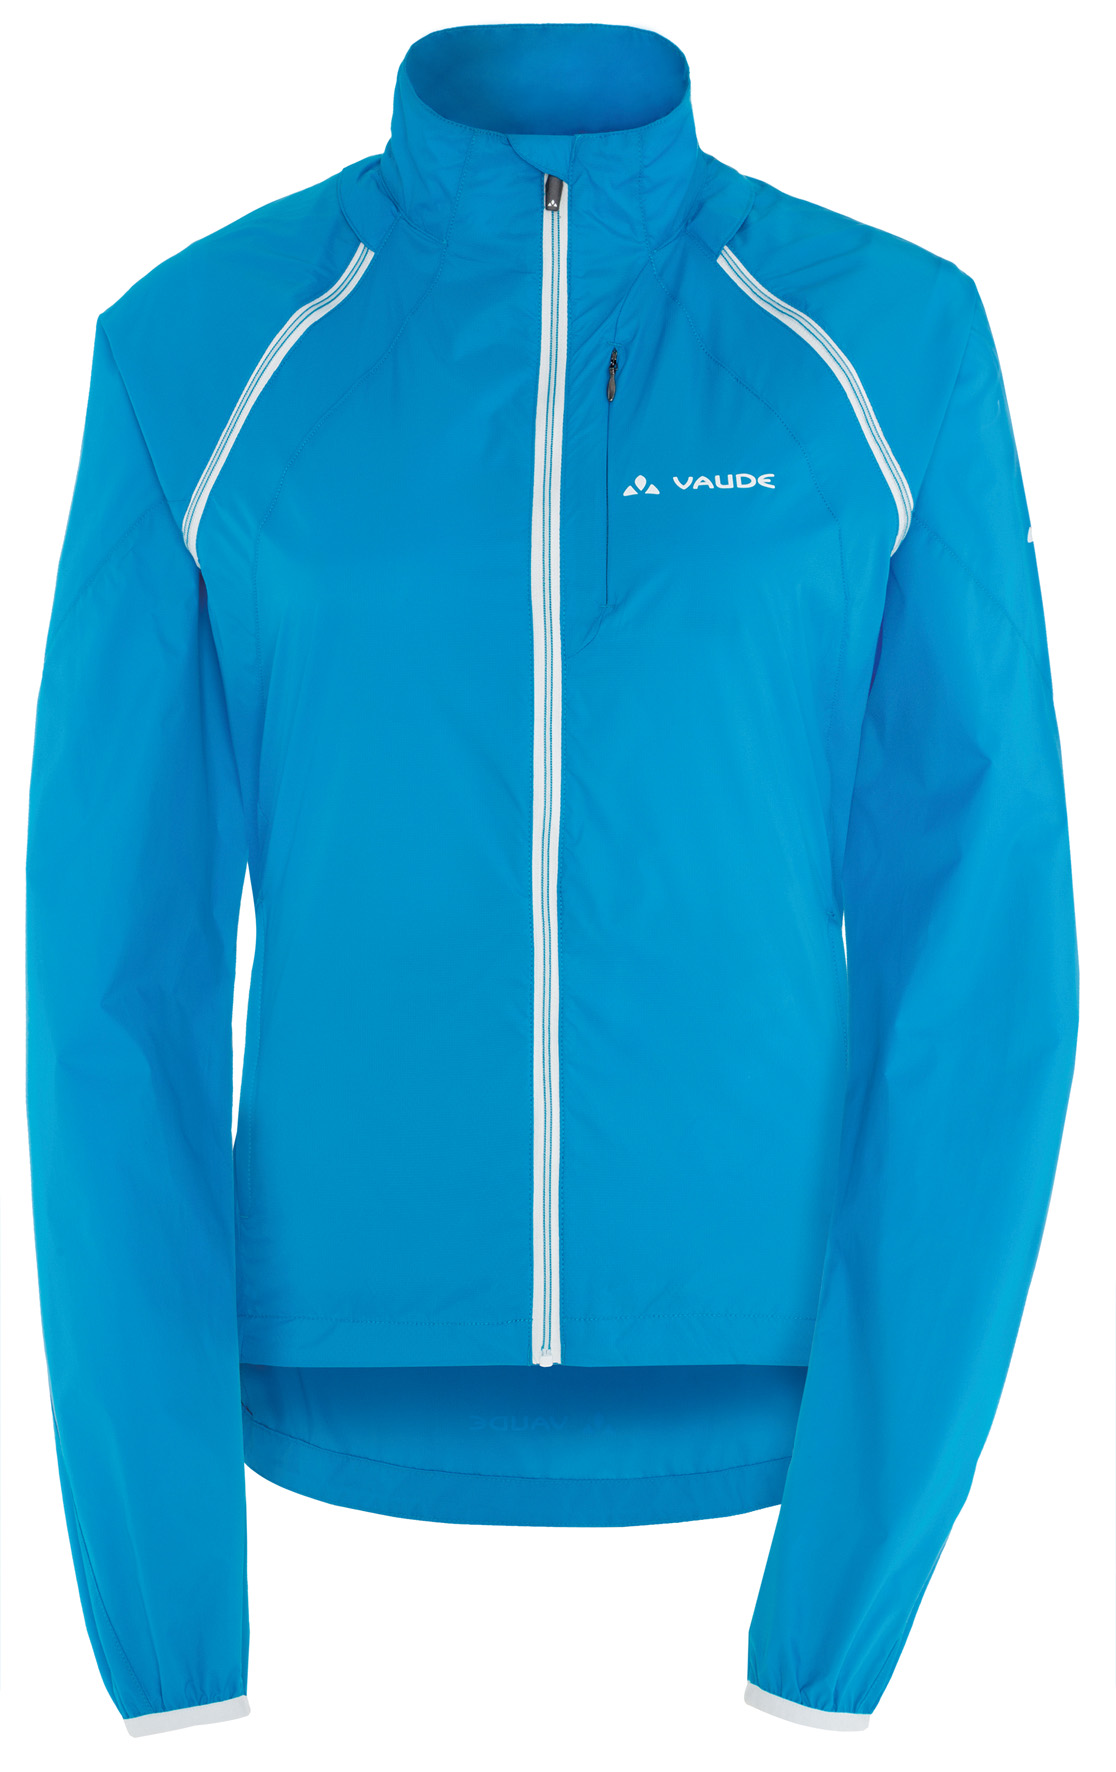 Women´s Windoo Jacket teal blue Größe 36 - schneider-sports